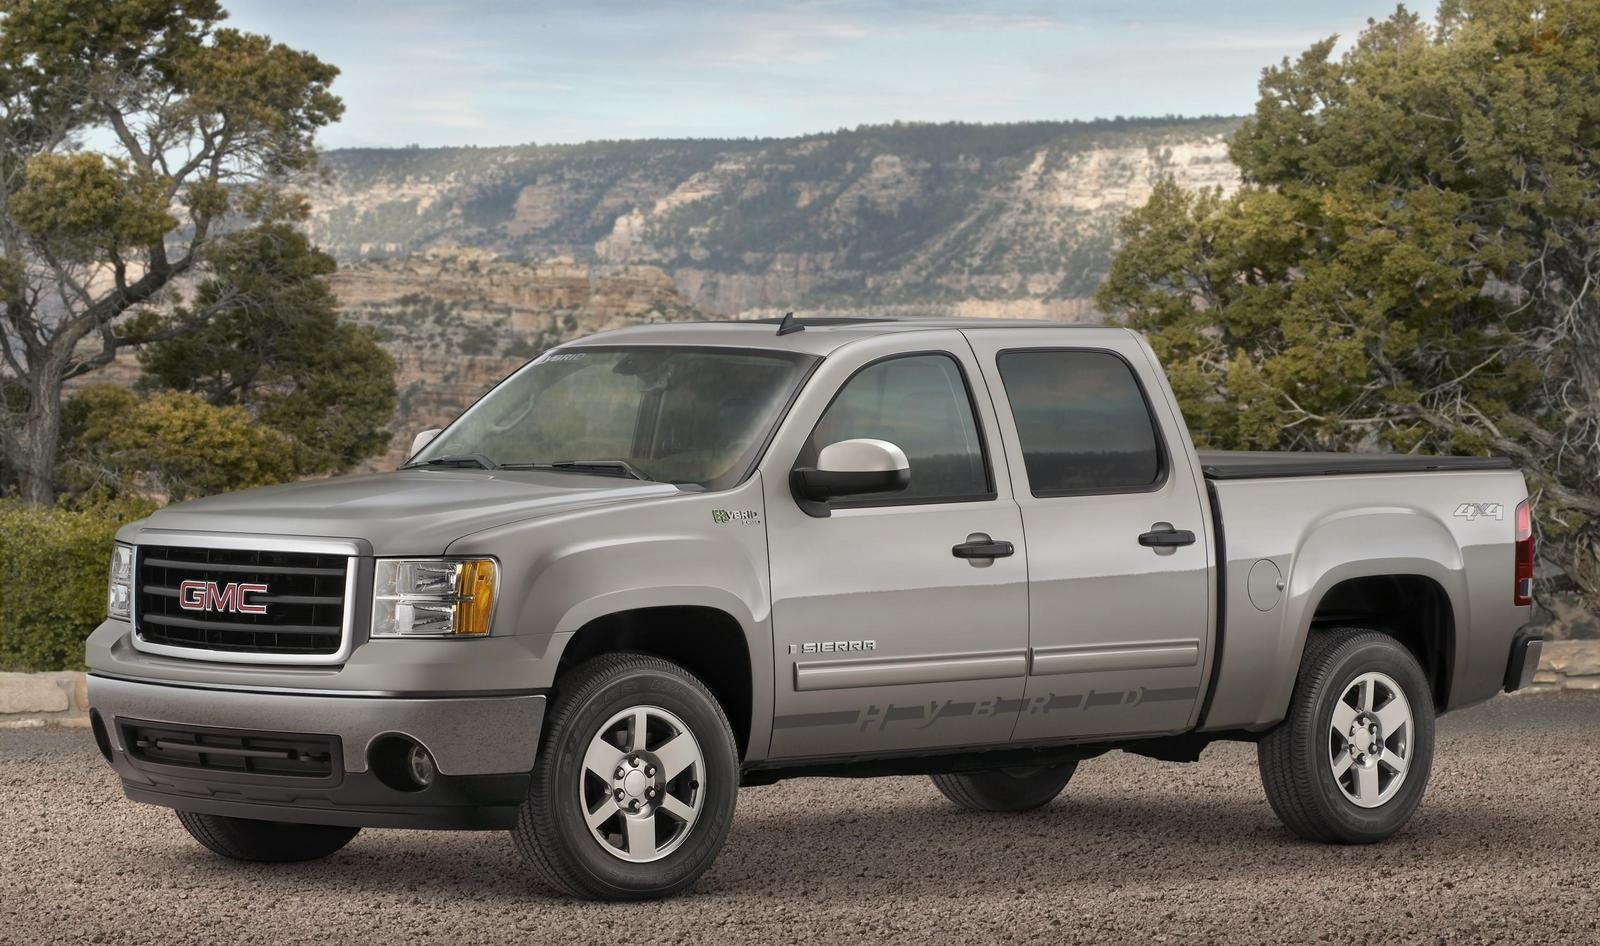 2009 gmc sierra hybrid 7_1600x0w gmc sierra reviews, specs & prices top speed  at reclaimingppi.co